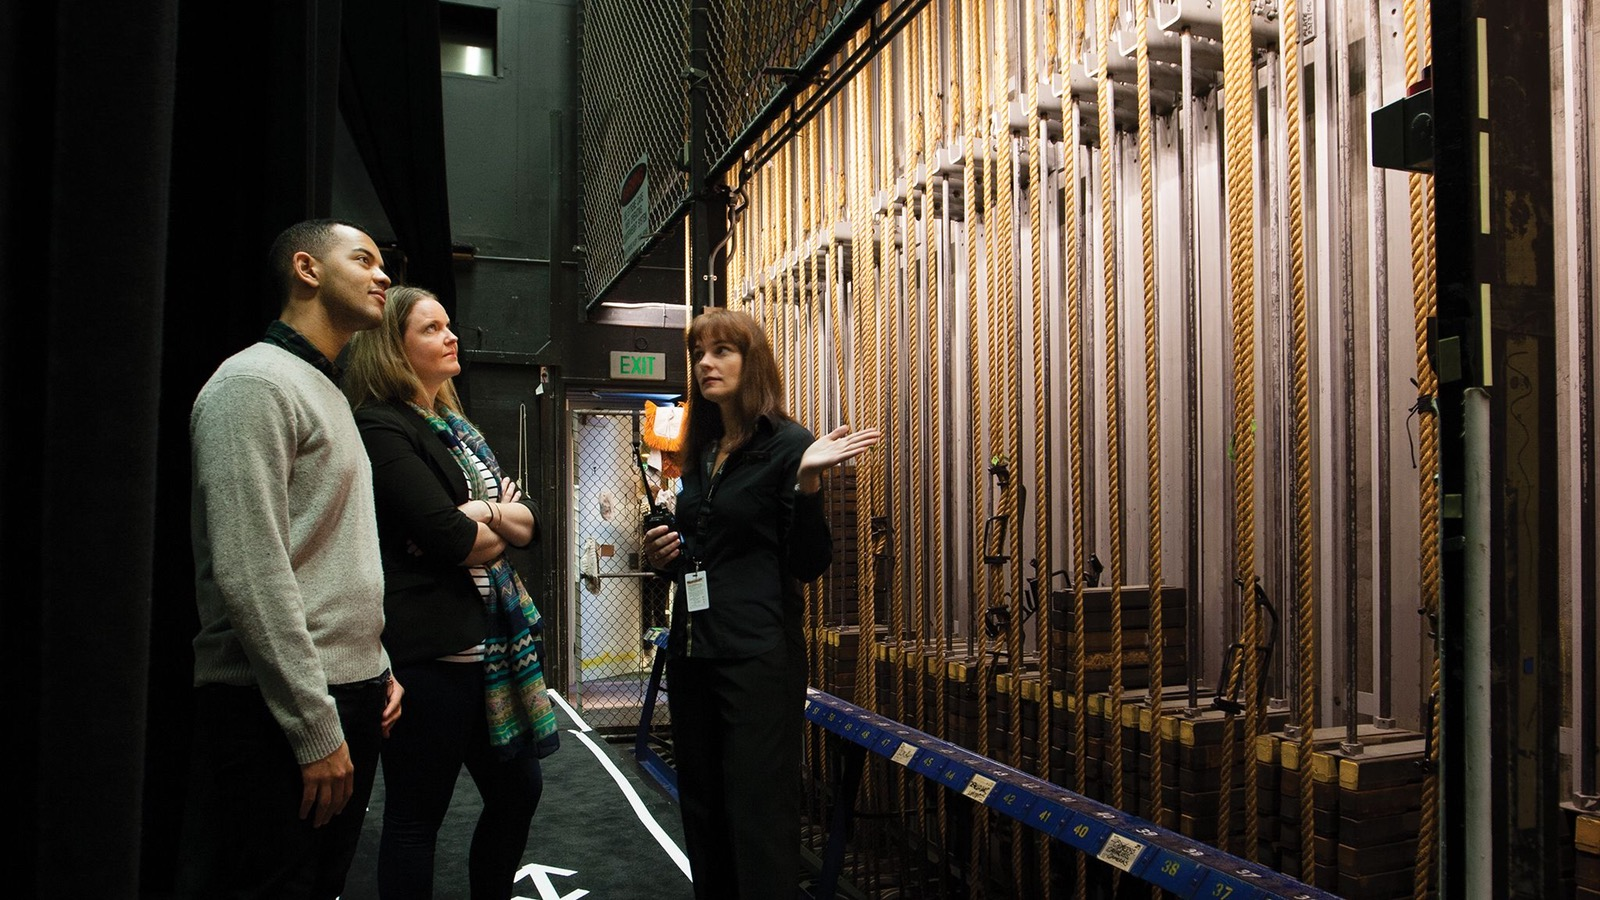 Backstage Tour Arts Centre Melbourne